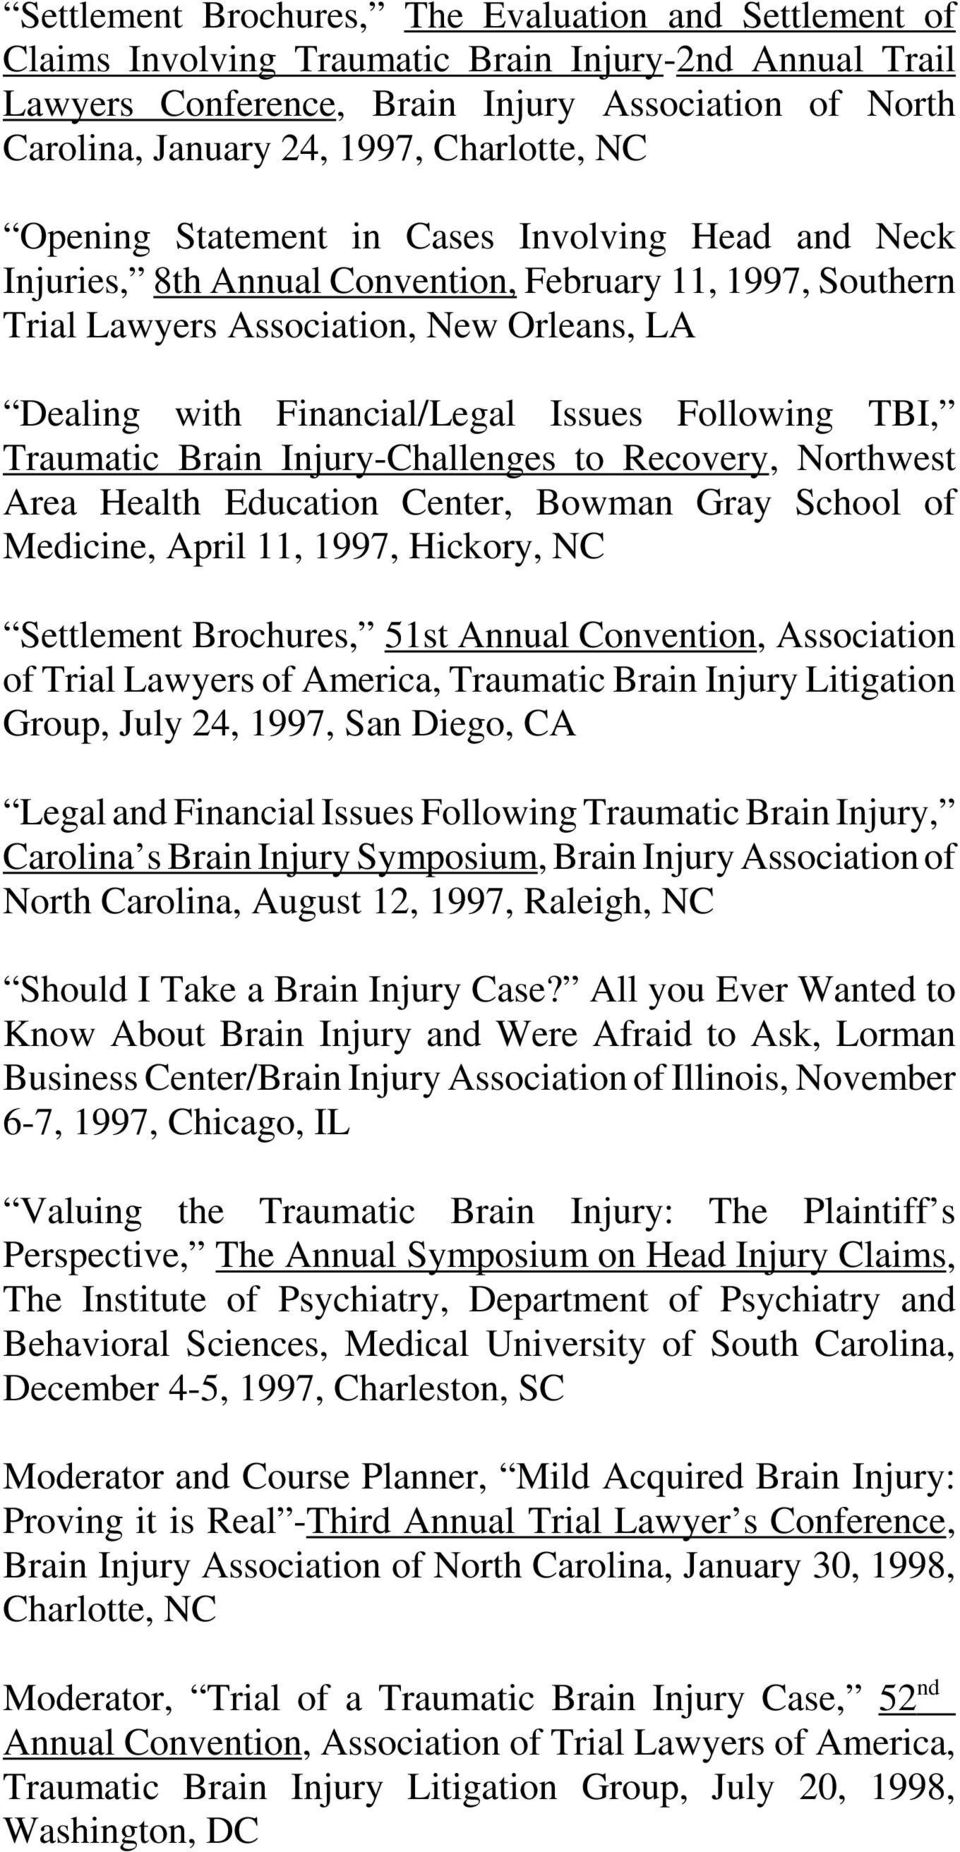 Issues Following TBI, Traumatic Brain Injury-Challenges to Recovery, Northwest Area Health Education Center, Bowman Gray School of Medicine, April 11, 1997, Hickory, NC Settlement Brochures, 51st